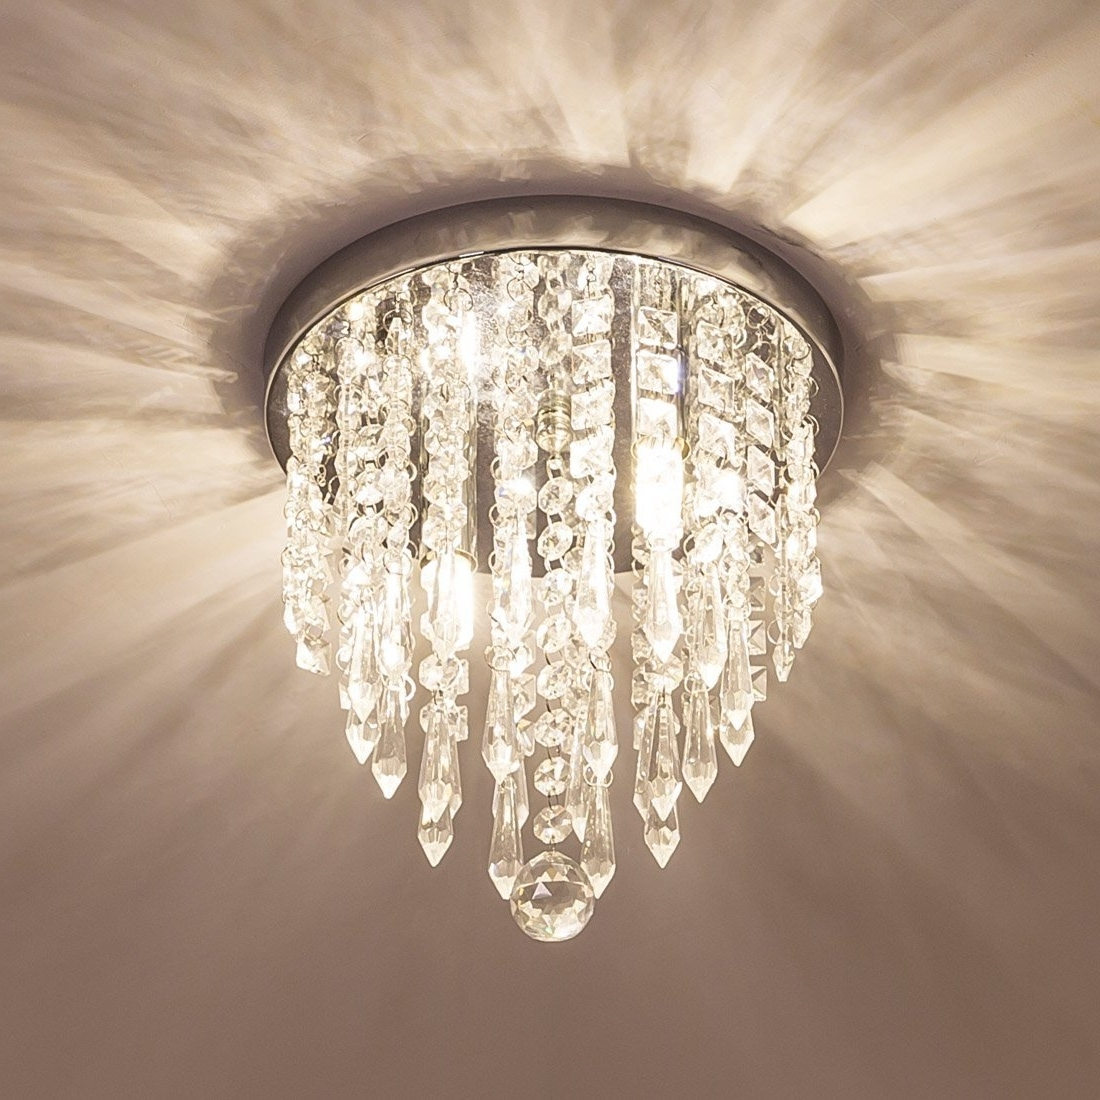 Lighting & Ceiling Fans – Ceiling Lights Within Wall Mounted Mini Chandeliers (View 10 of 15)